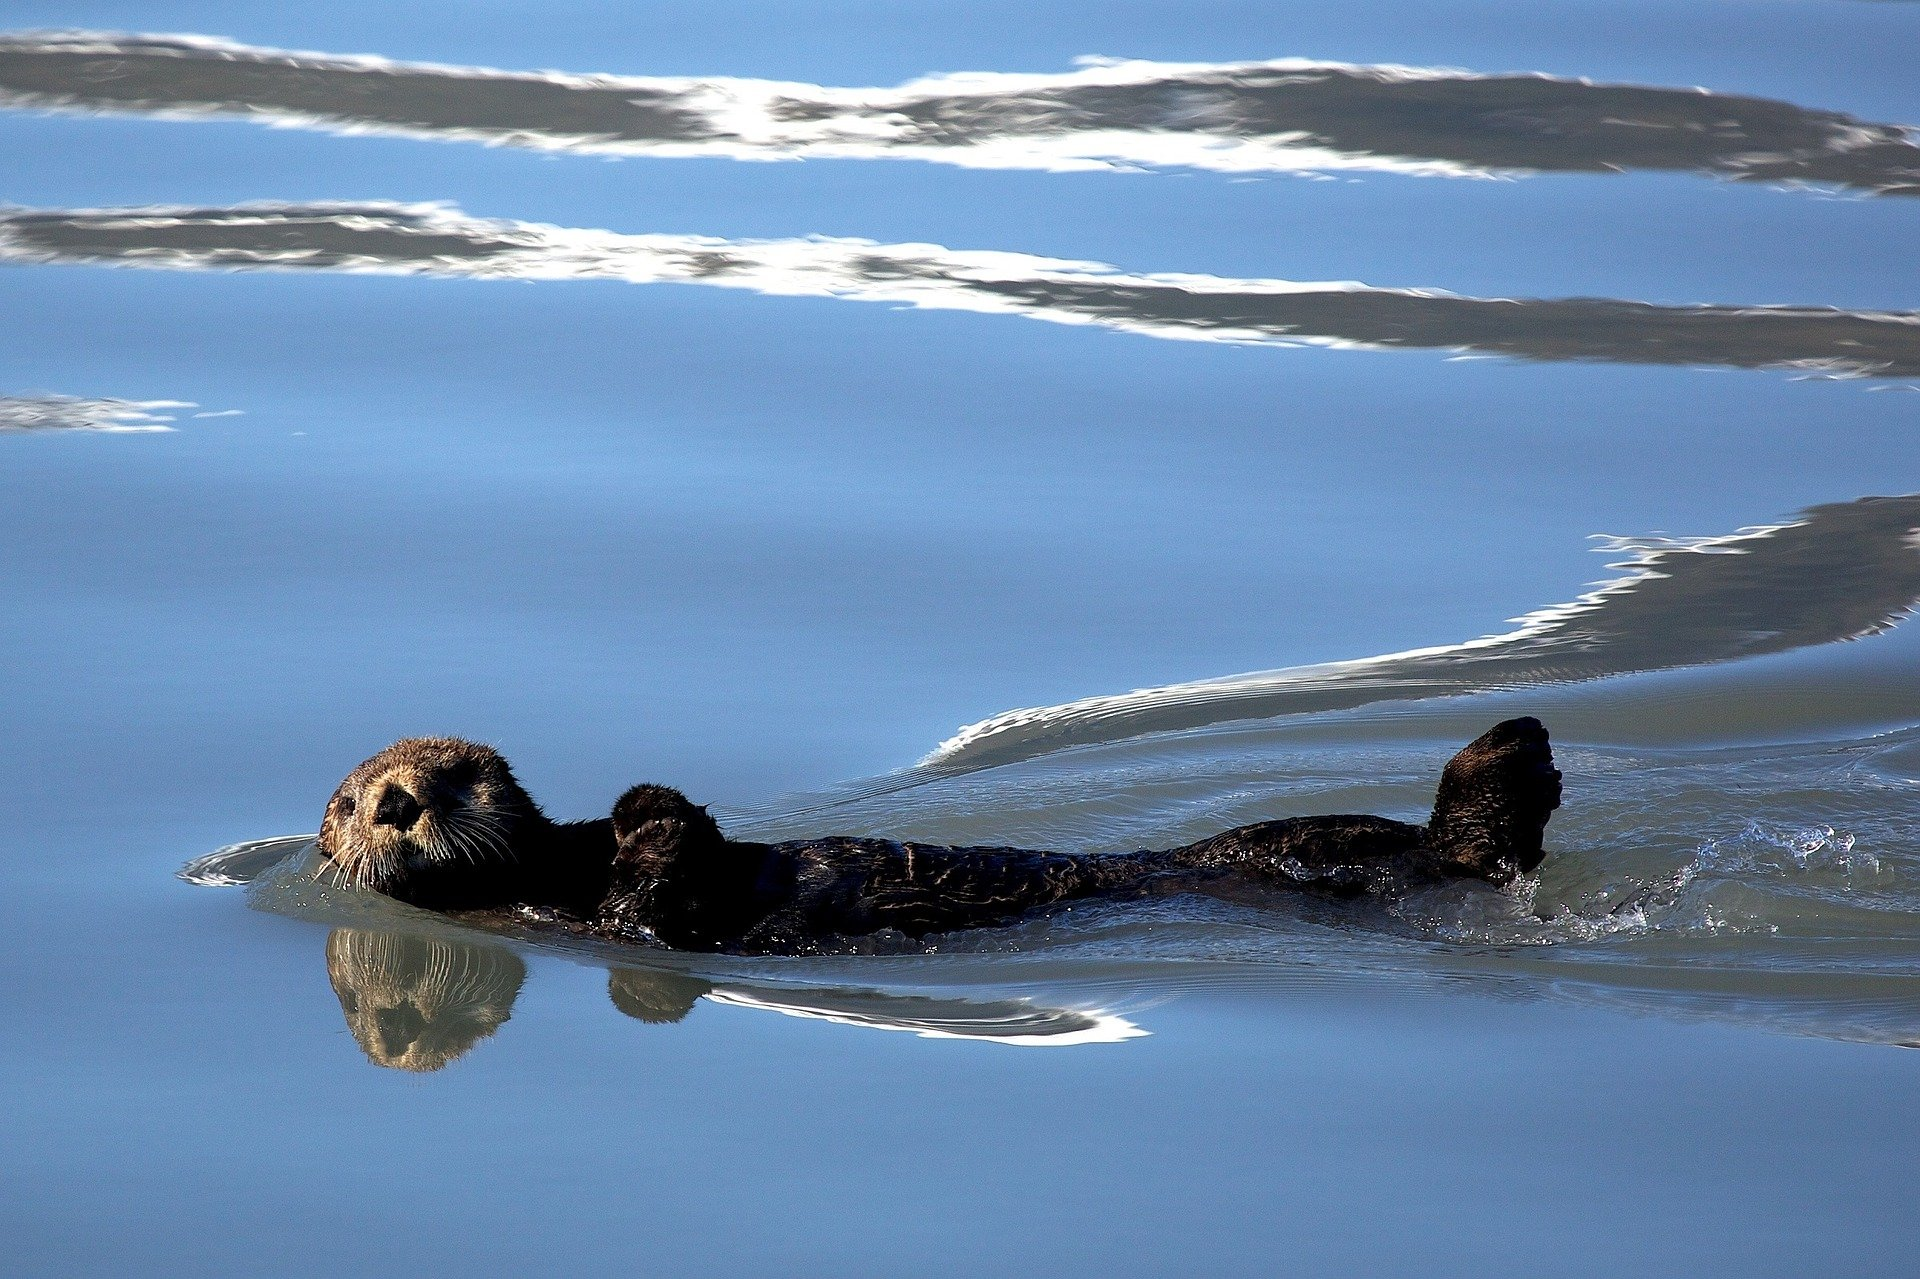 Sea animals - otters